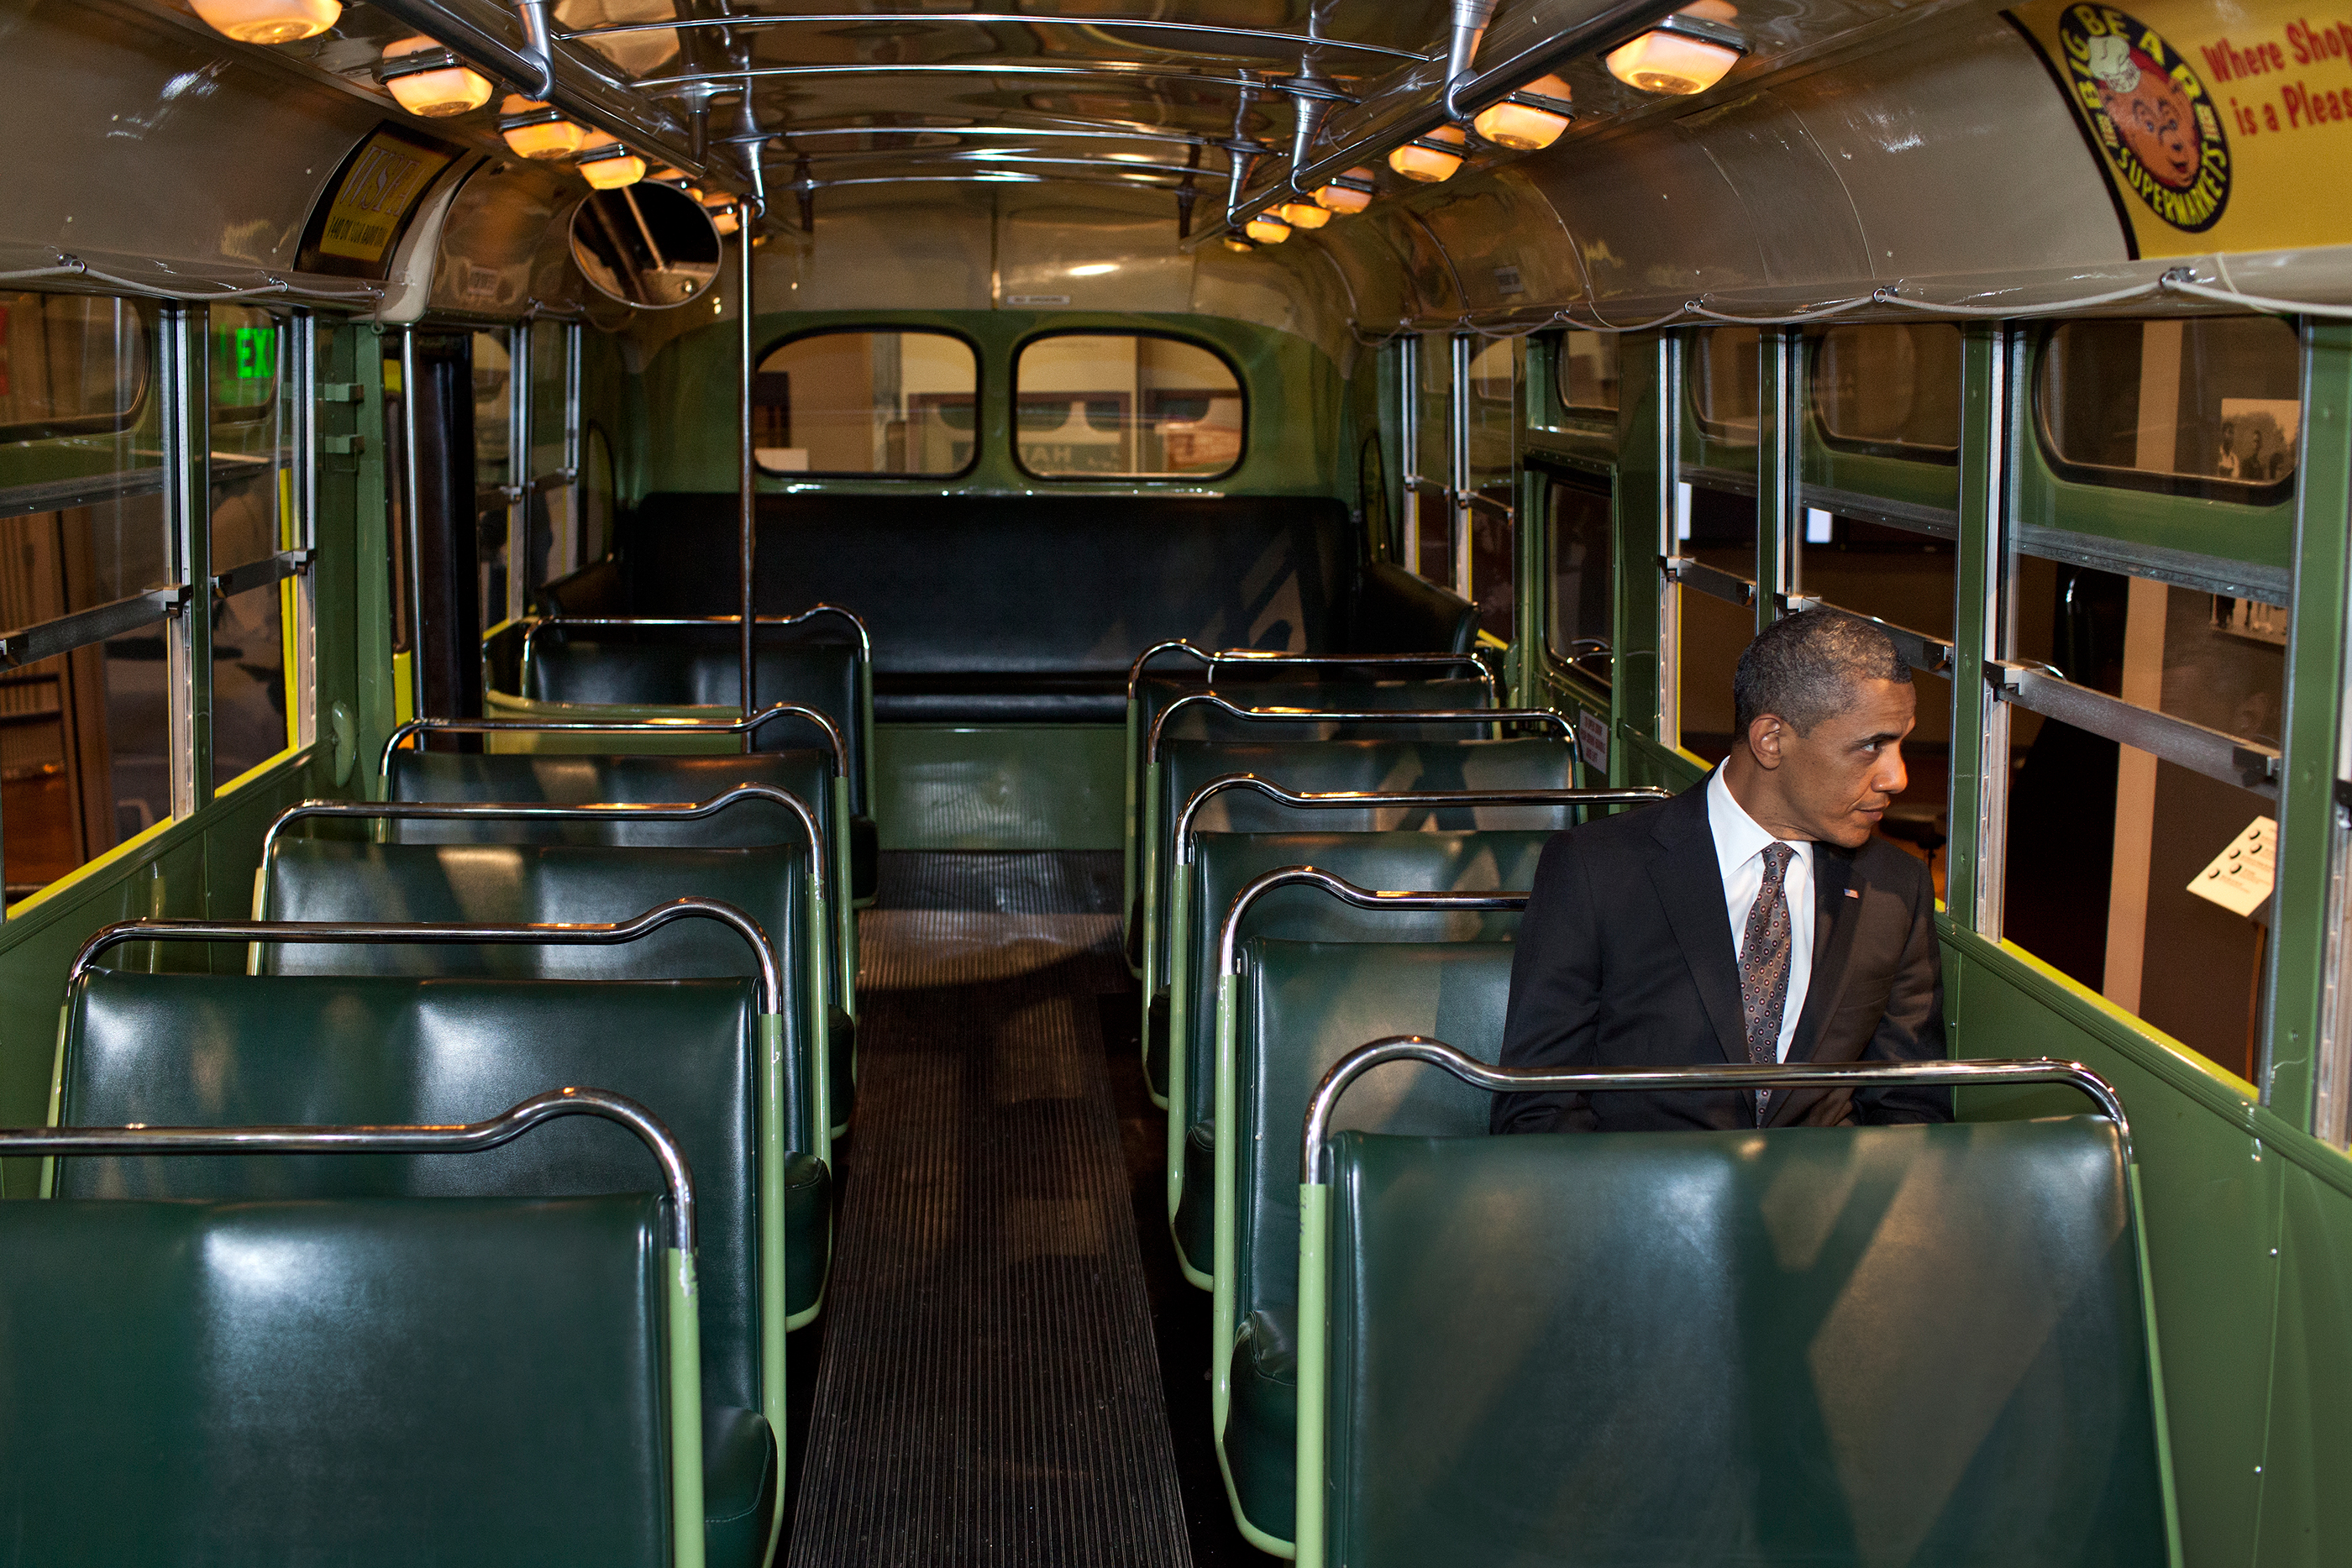 Michigan, April 18, 2012. Sitting on the famed Rosa Parks bus at the Henry Ford Museum in Dearborn. (Official White House Photo by Pete Souza)